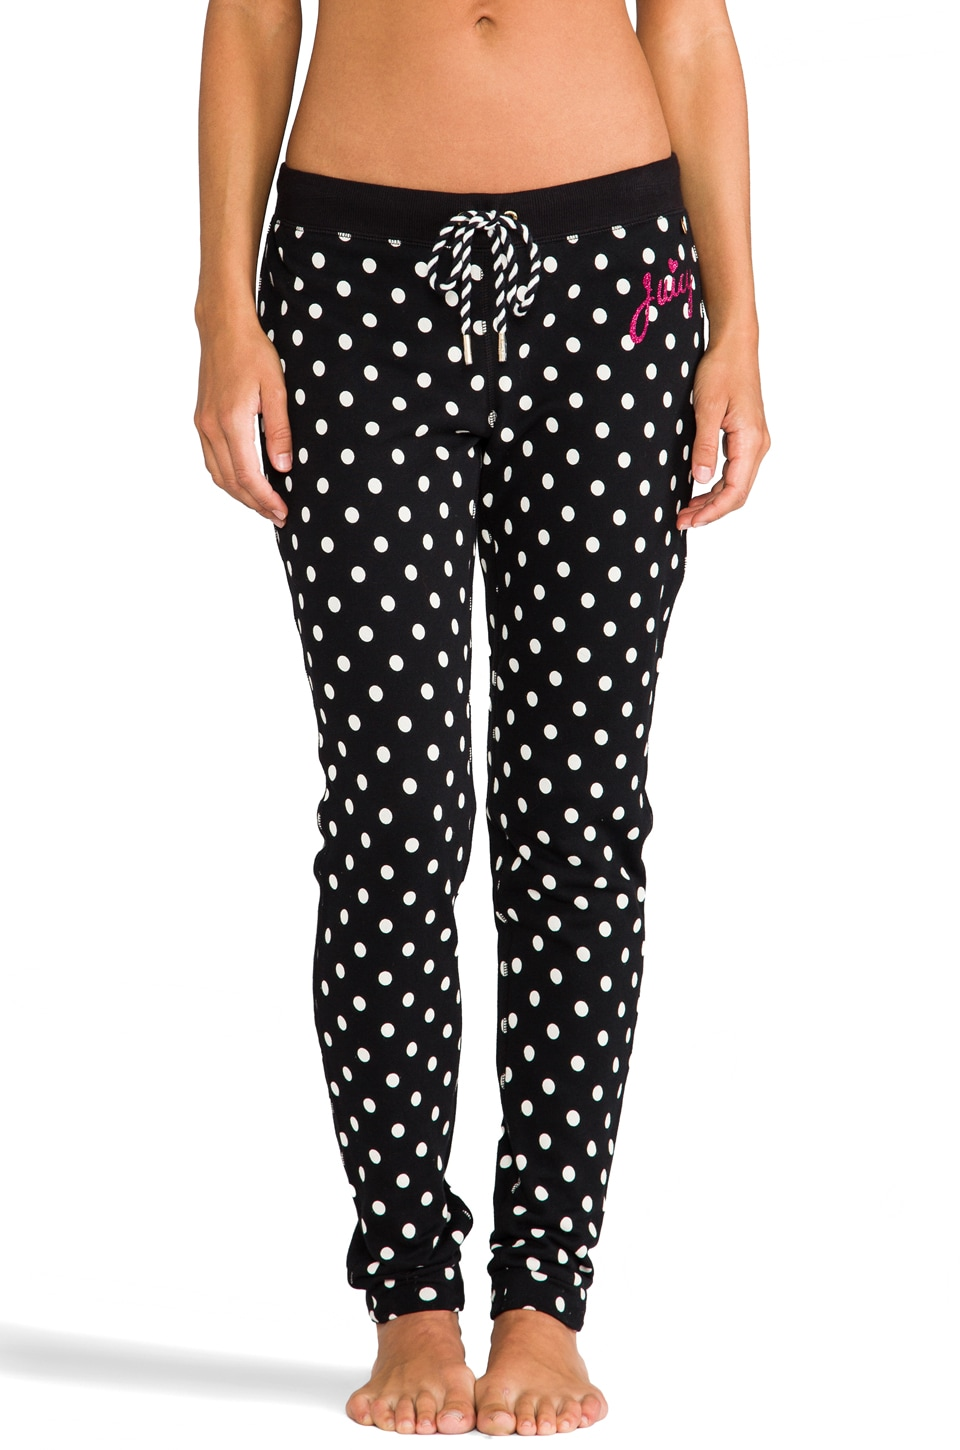 Juicy Couture Polka Dot French Terry Pant in Black/Angel Preppy